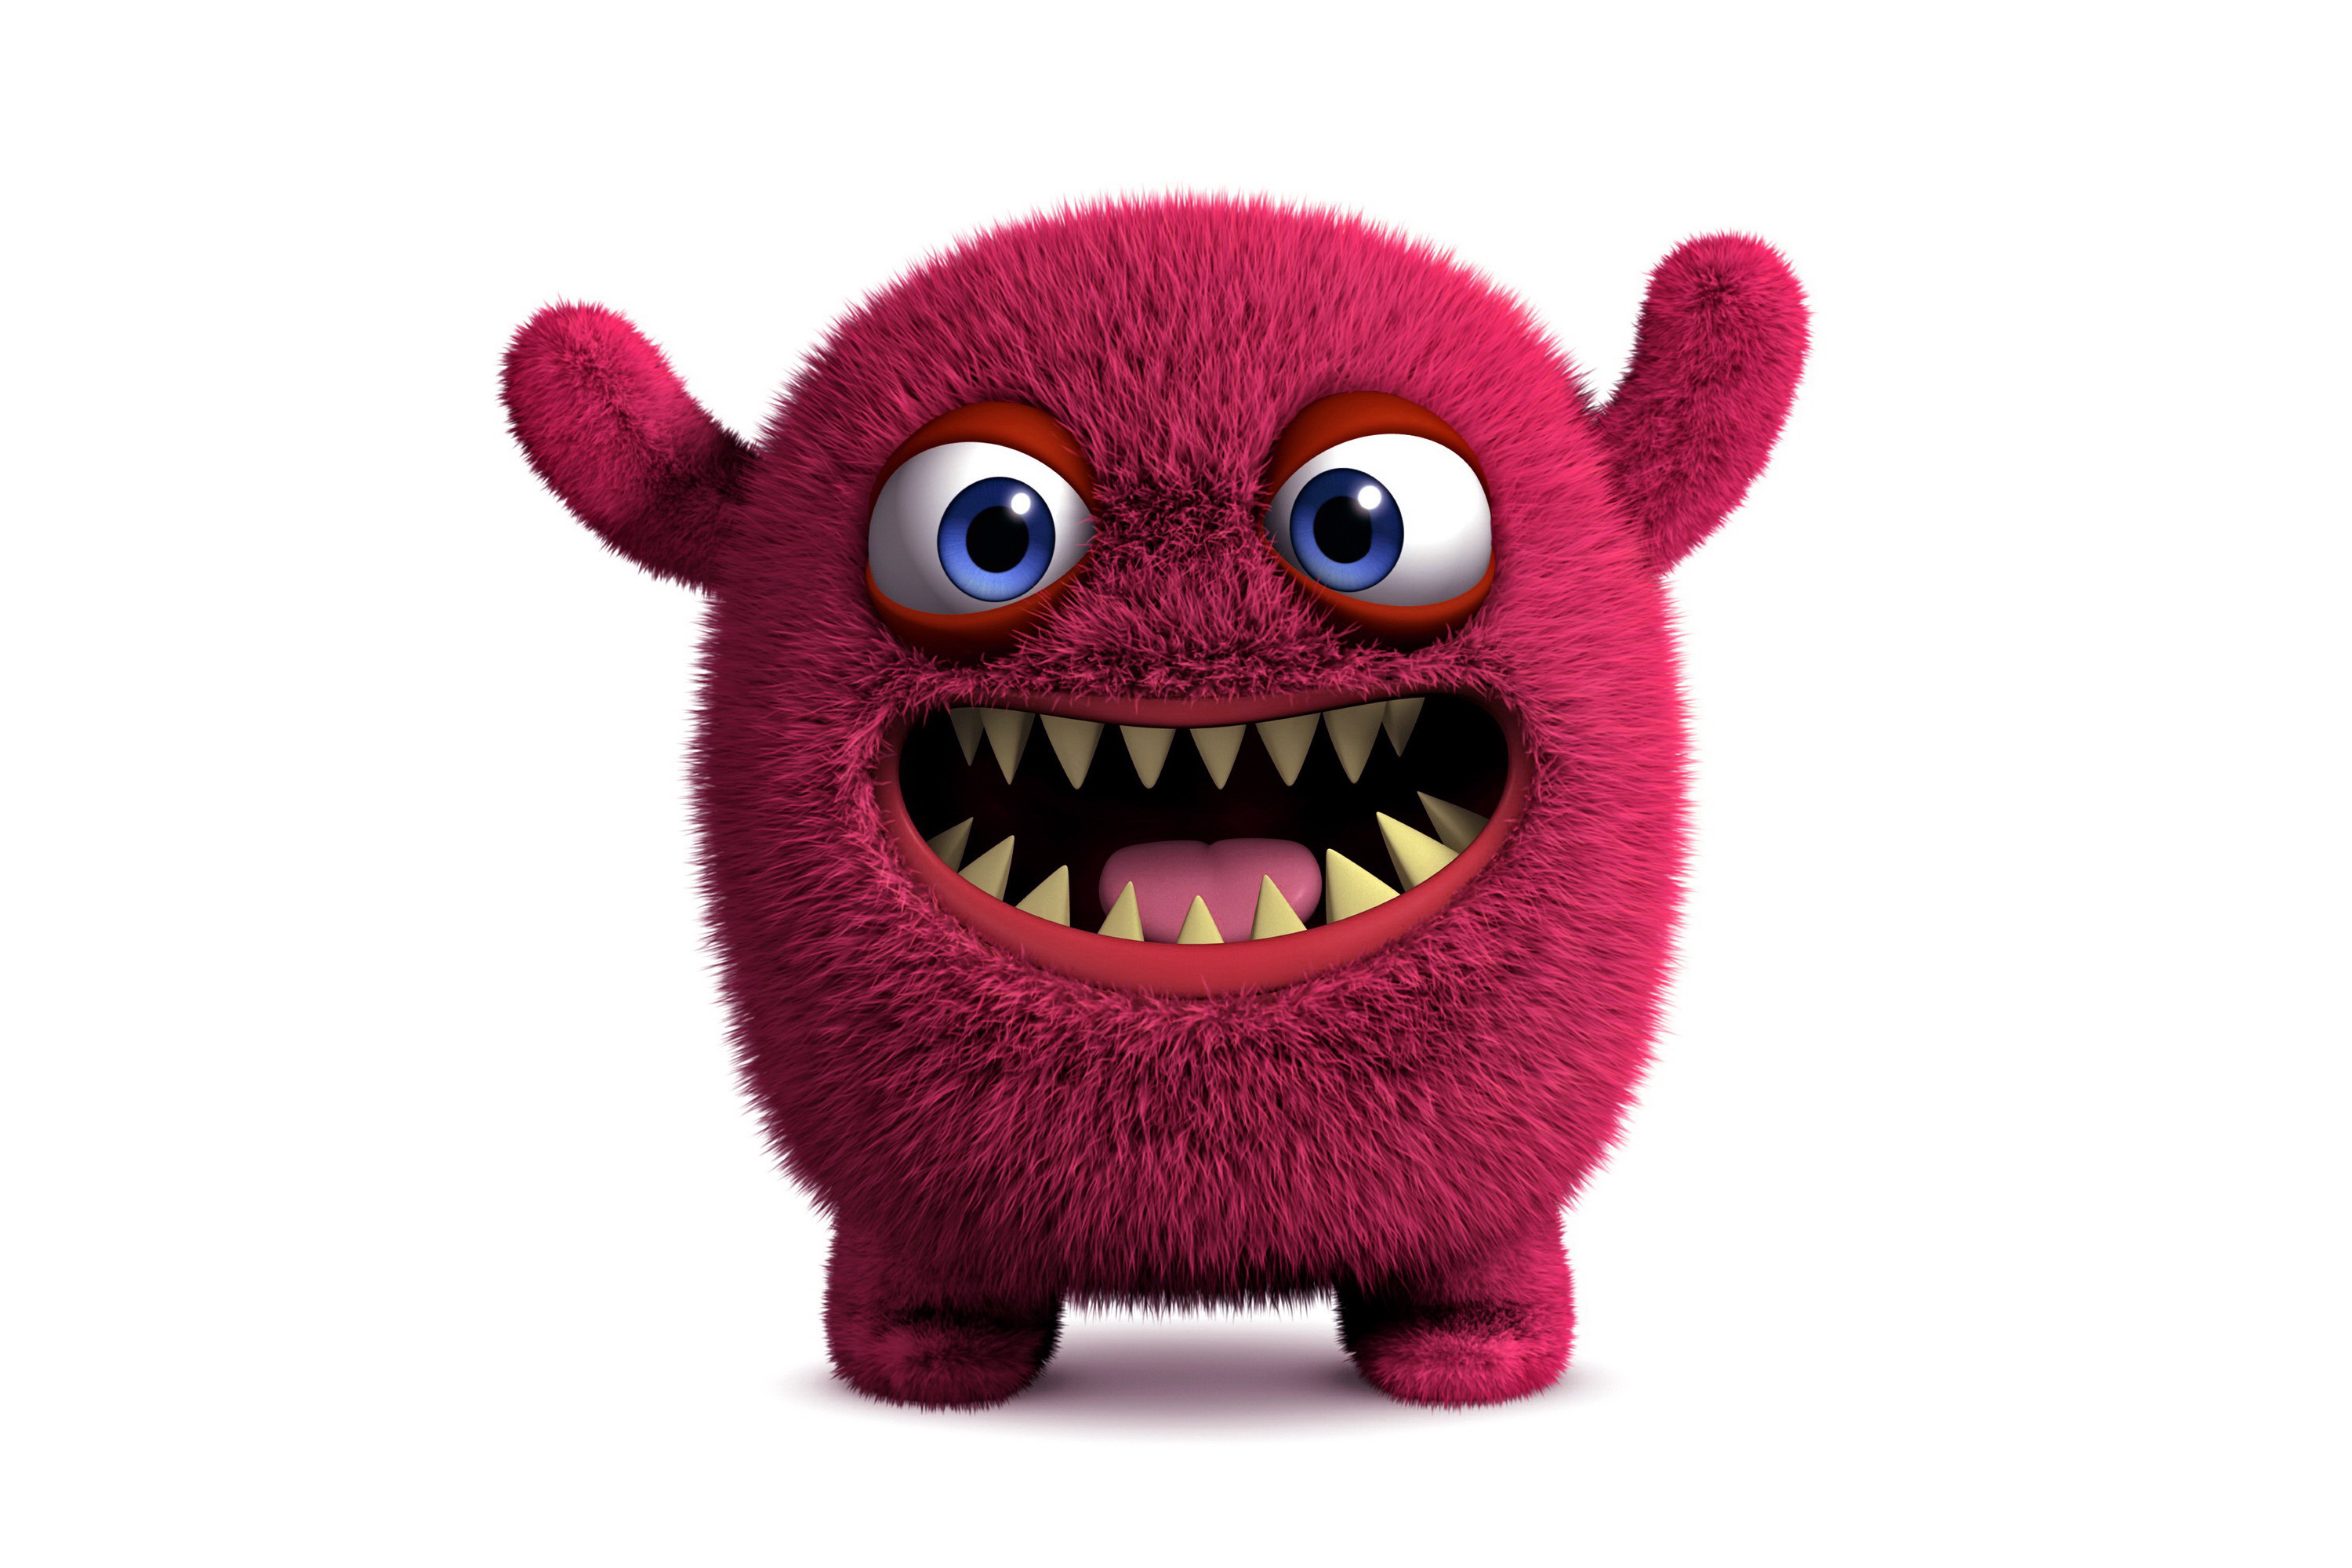 monster fluffy cute funny 3d face animated wallpapers abstract rendering wallpapersafari desktop code